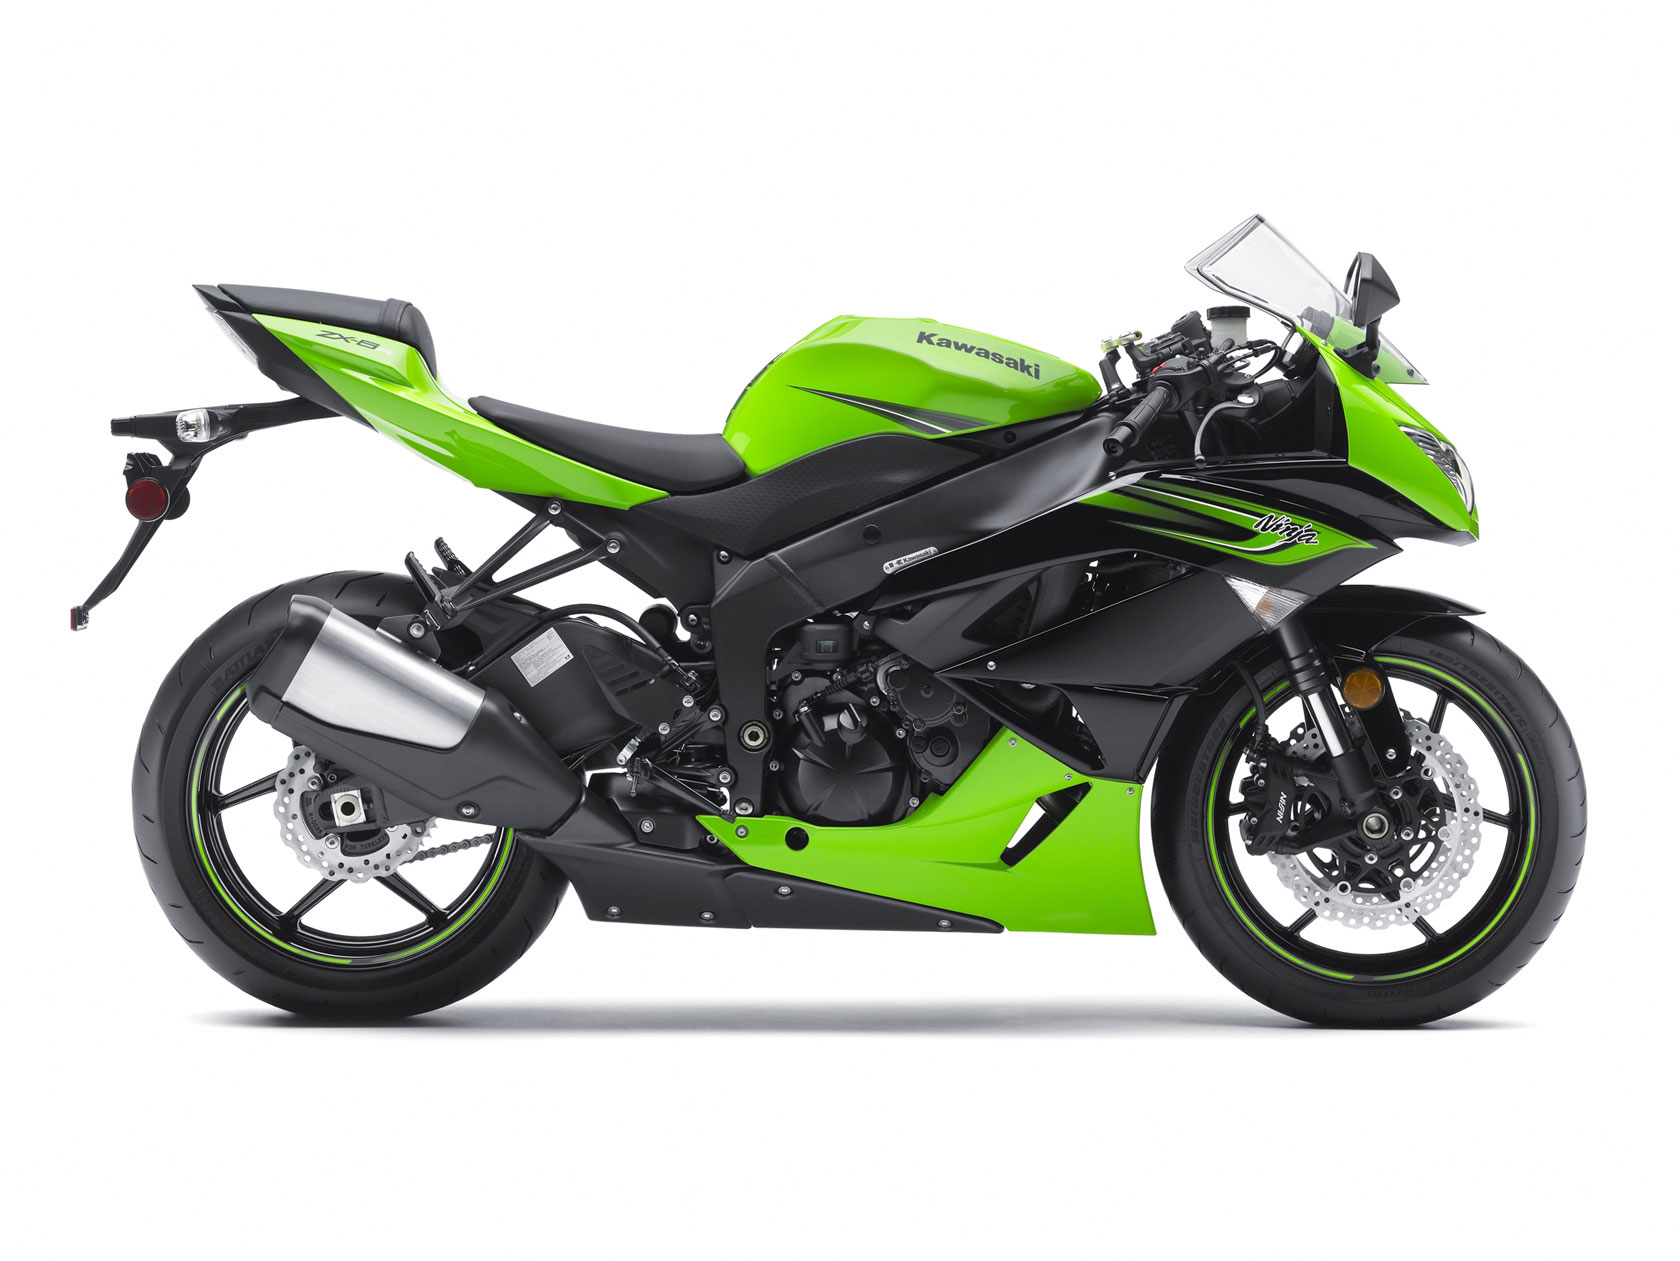 Front kit for Kawasaki ZX-6R